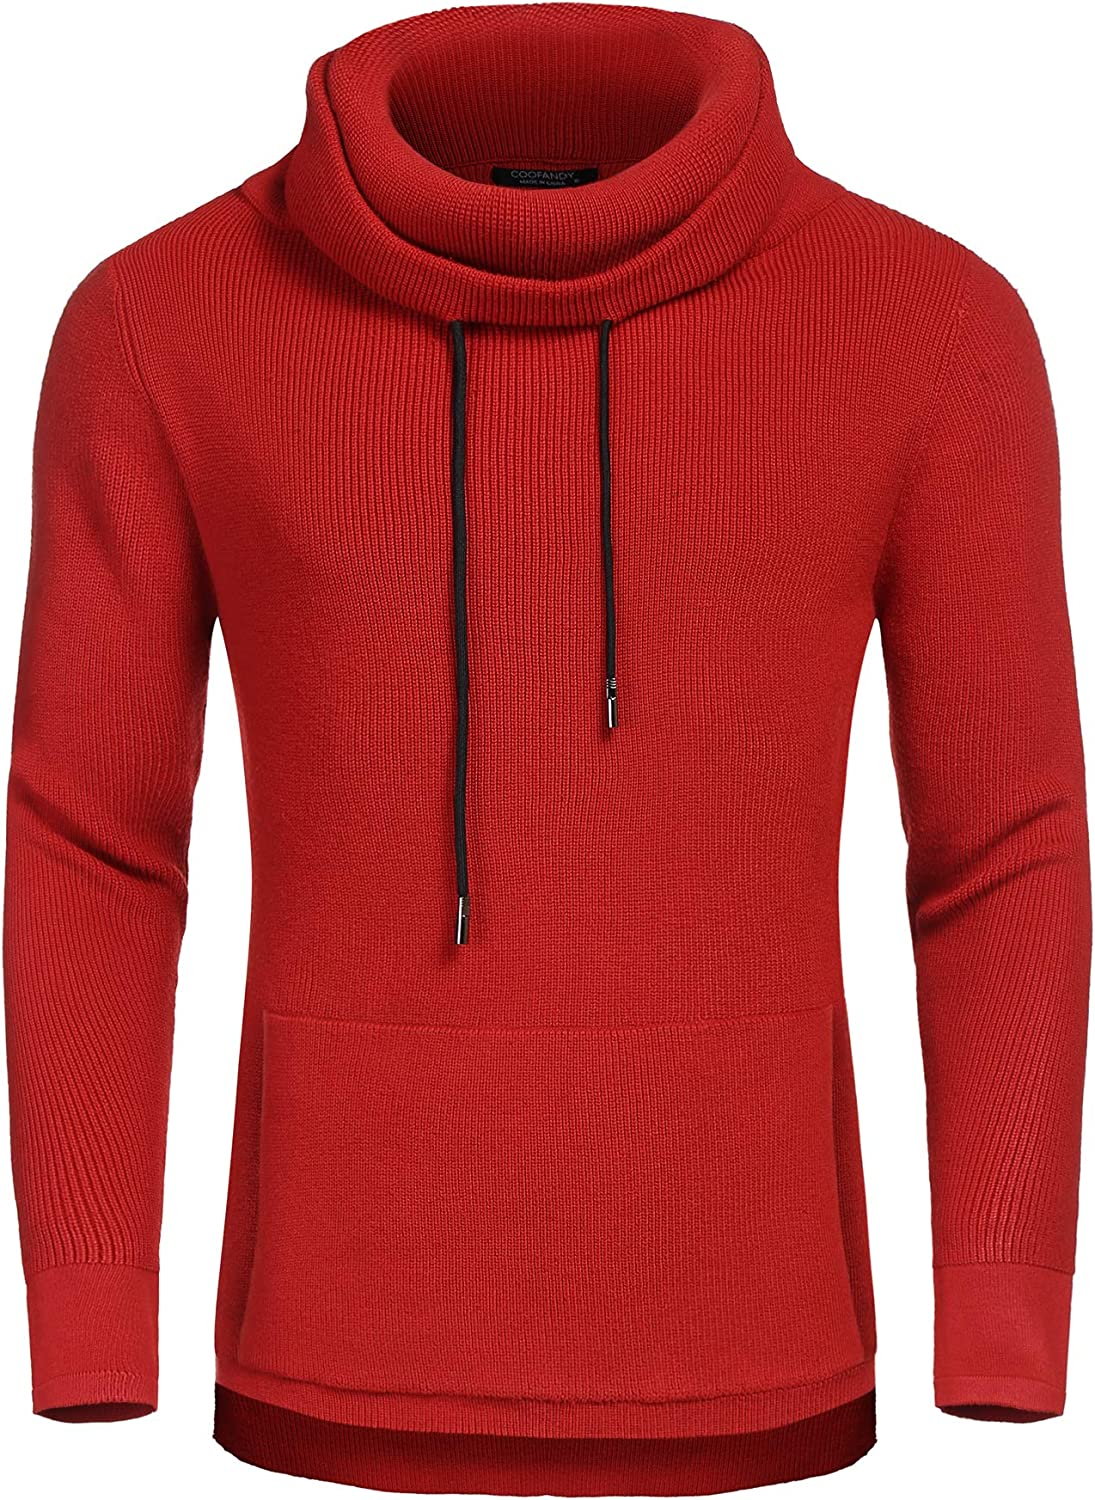 COOFANDY Men/'s Knitted Cotton Pullover Hoodie Long Sleeve Turtleneck Sweater